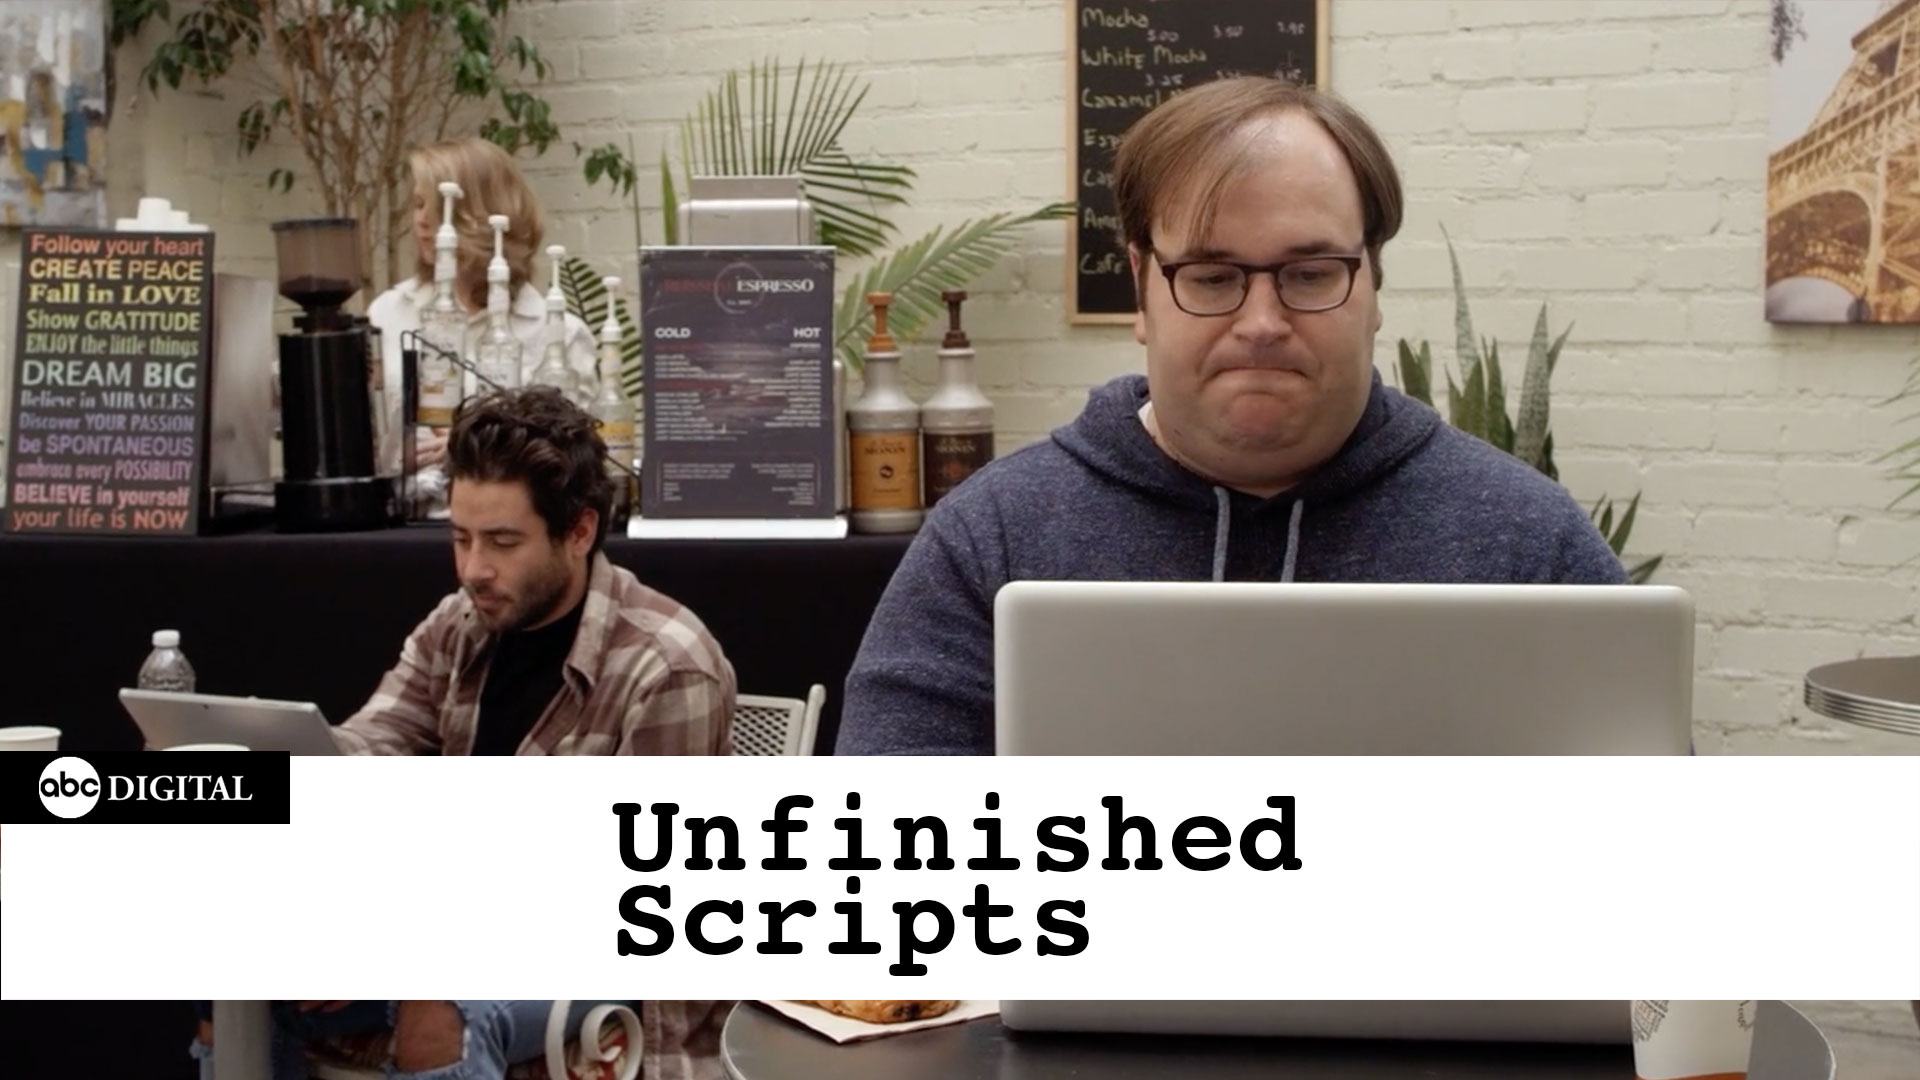 UNFINISHED SCRIPTS    Inspired by  comedy writer Gavin Speiller's Twitter account, Unfinished Scripts brings to life the first page of some of the worst movie ideas you've never seen.